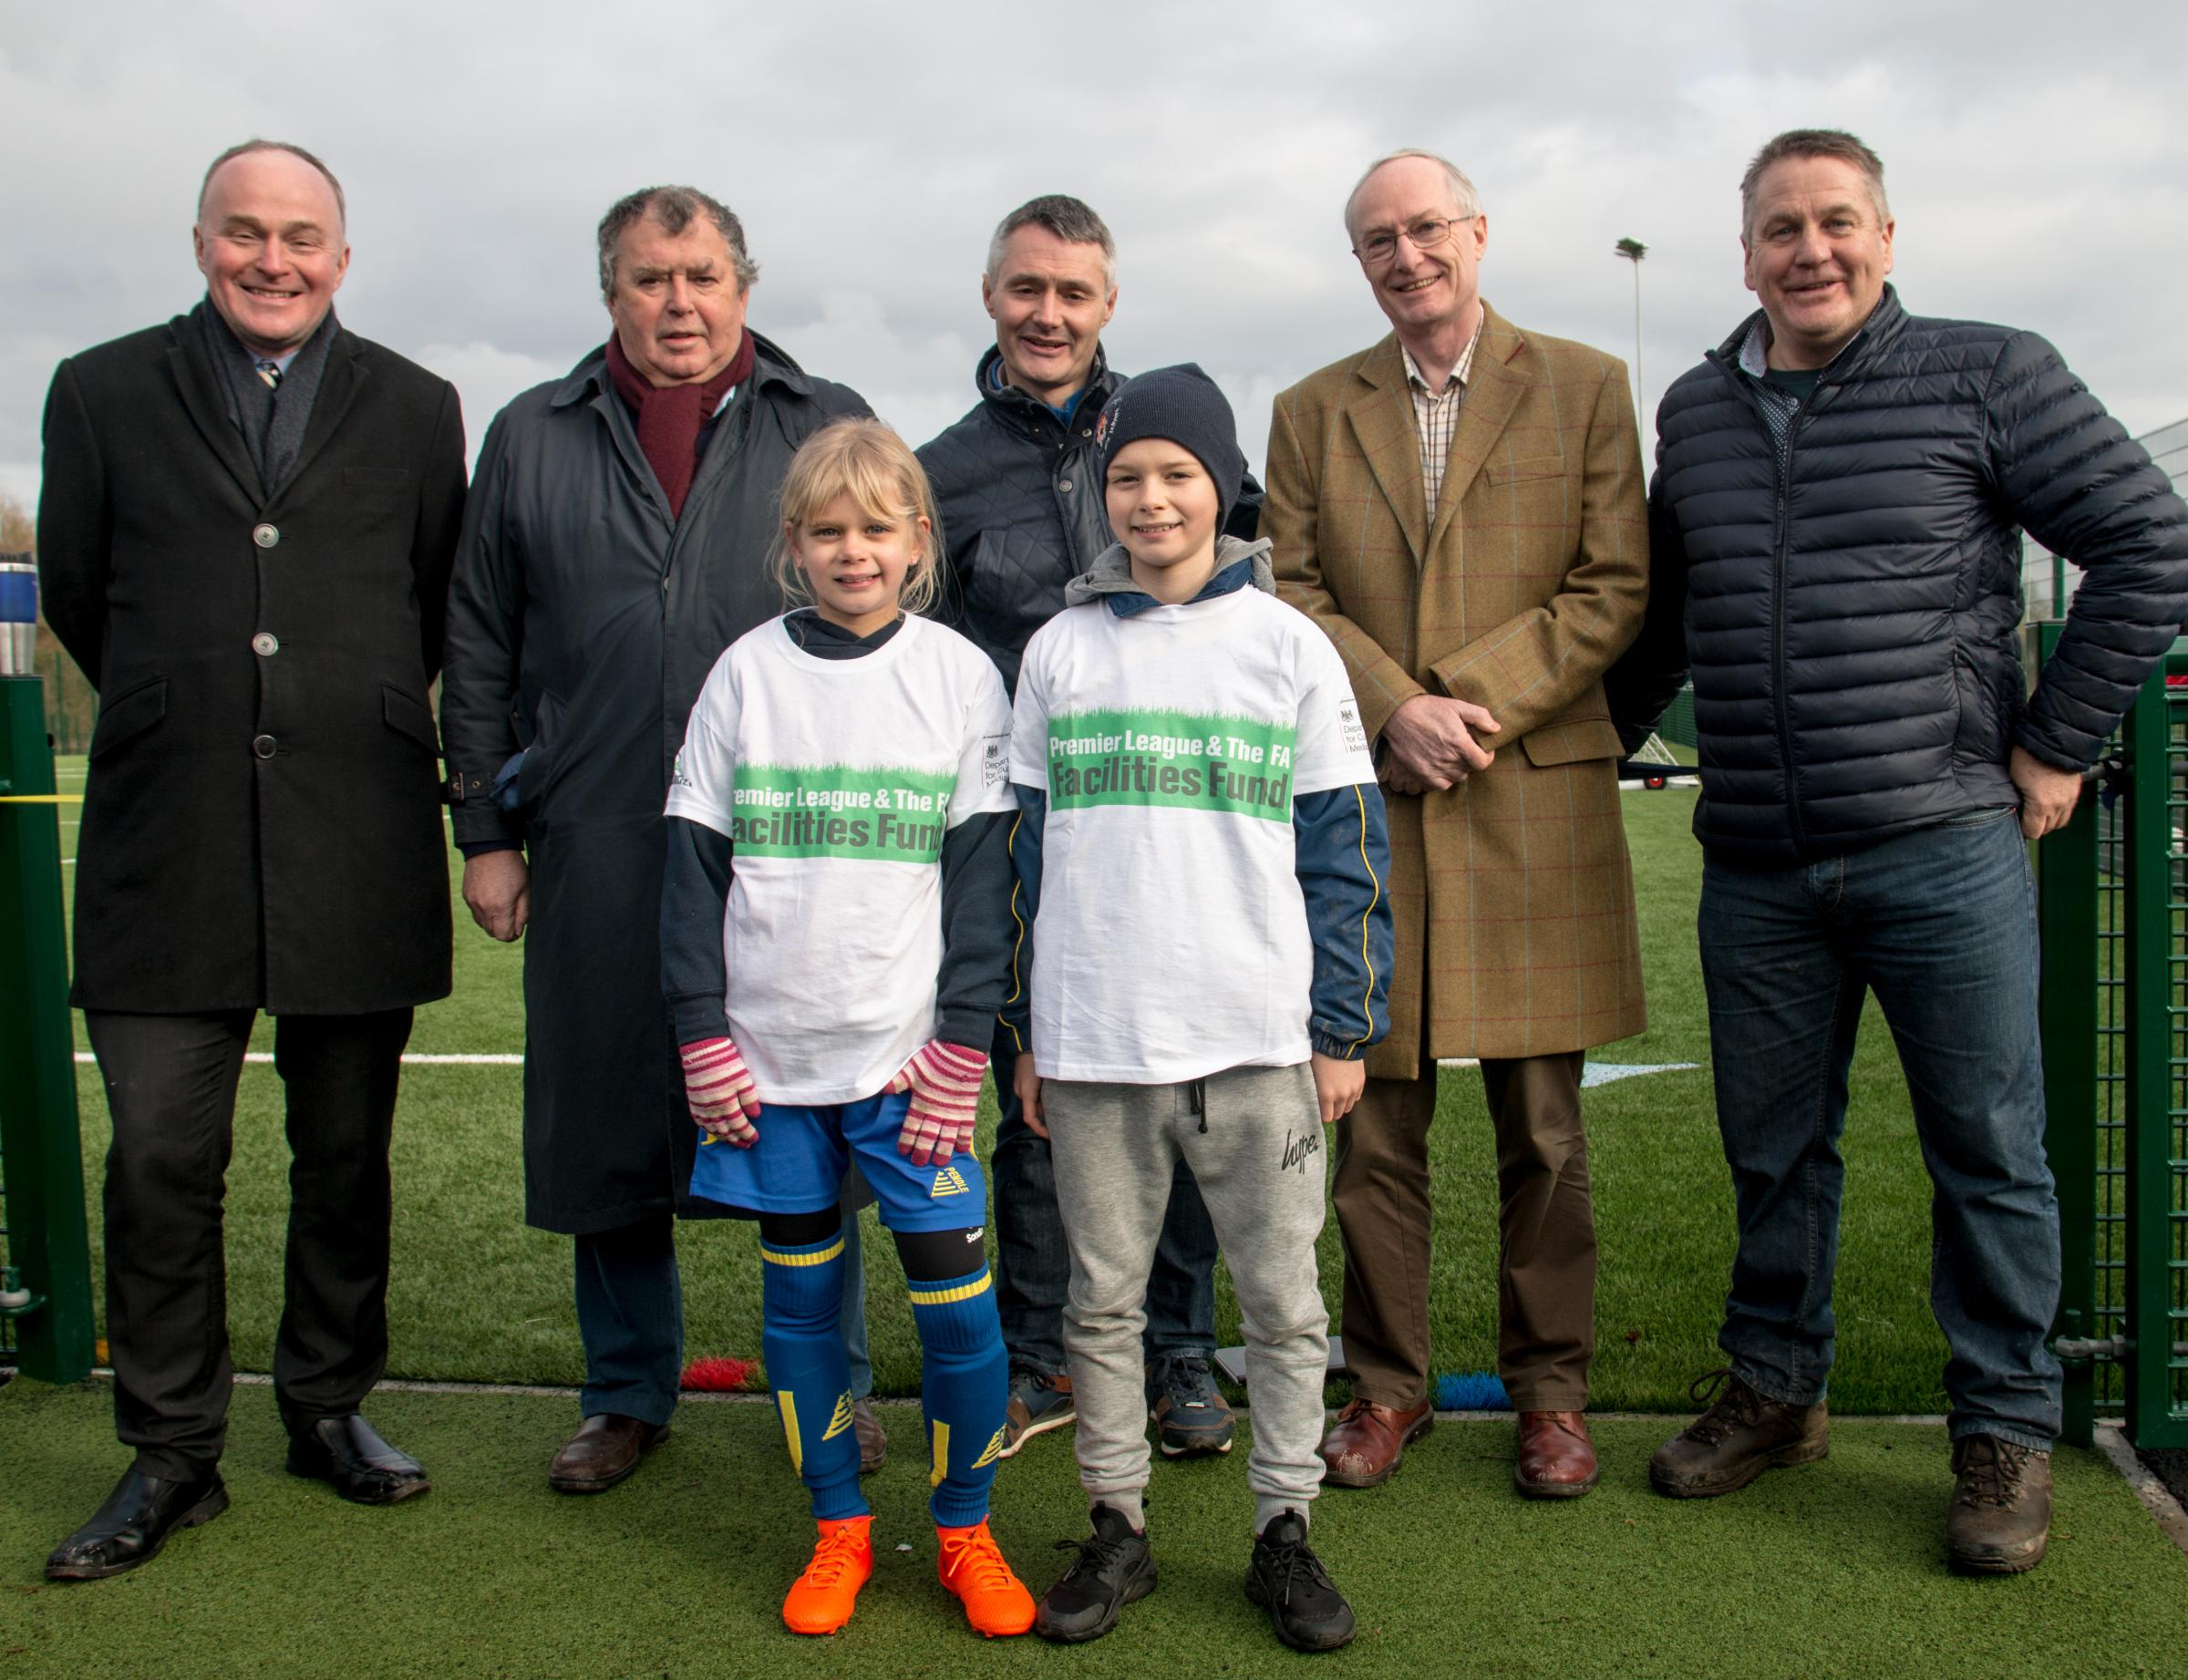 John Grogan MP, Mike Ridgeway Chairman of Awards Committee, Ilkley Parish Council, Richard Giles, Chairman Ilkley Town AFC, Steven Butler Chairman of Ilkley Parish Council, John Hendrie, Bradford City LegendFront row l-f Gemma Knight and Scott Knight. Pic